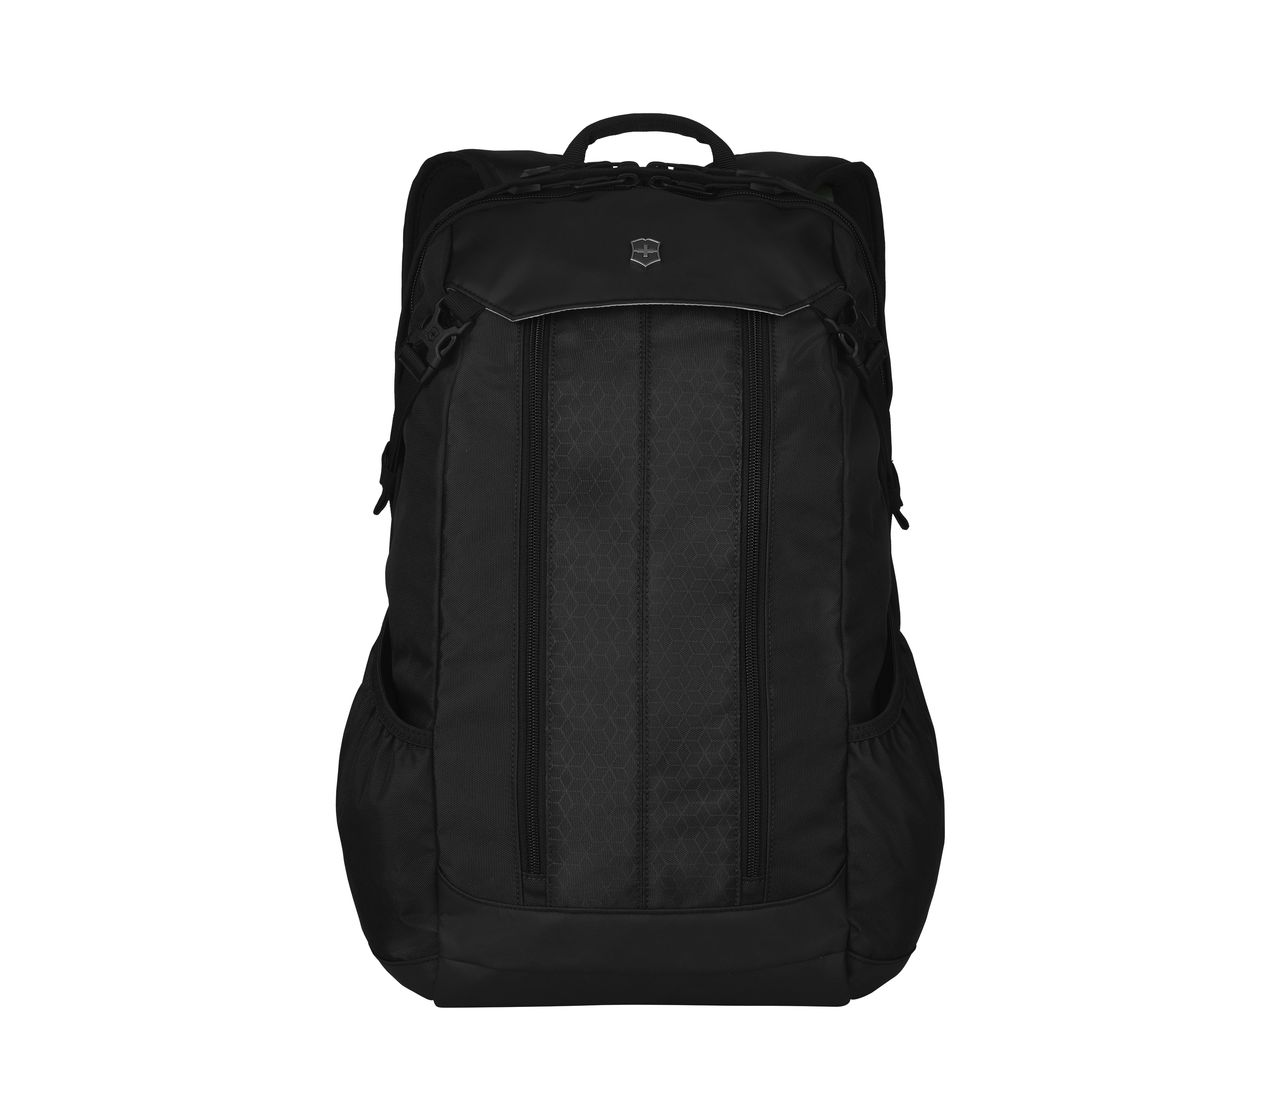 7fc8b0eea3fe Check this out:Altmont Original Slimline Laptop Backpack